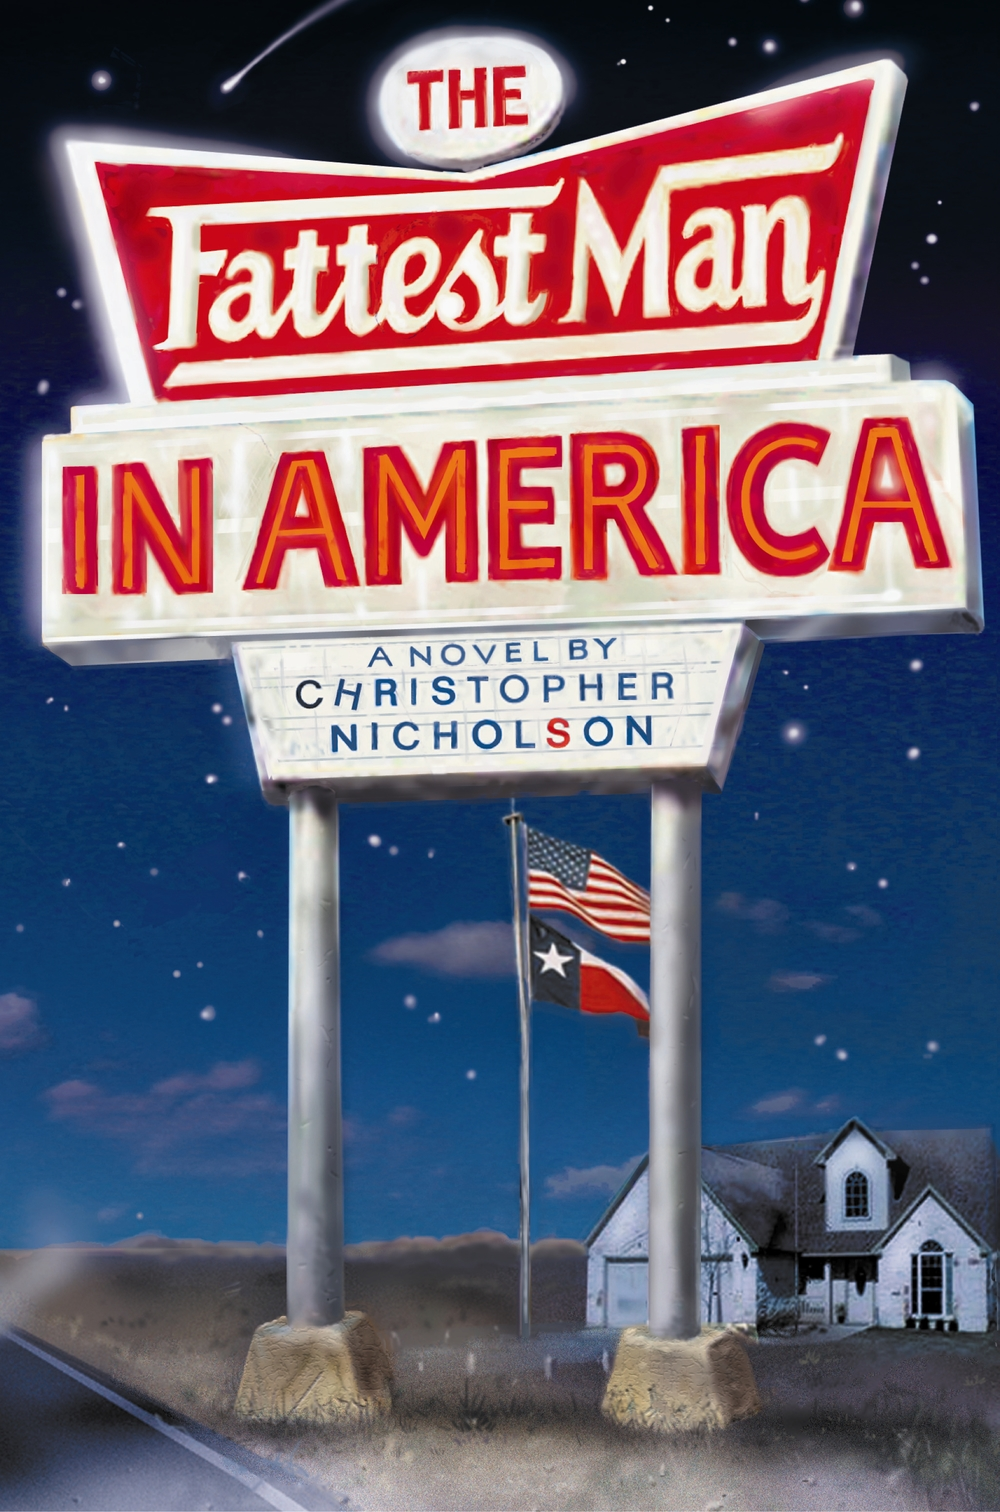 THE FATTEST MAN IN AMERICA Novel, 256 pages Constable, 26 May 2005 A darkly comic fable set in a small Texas town in modern day America.